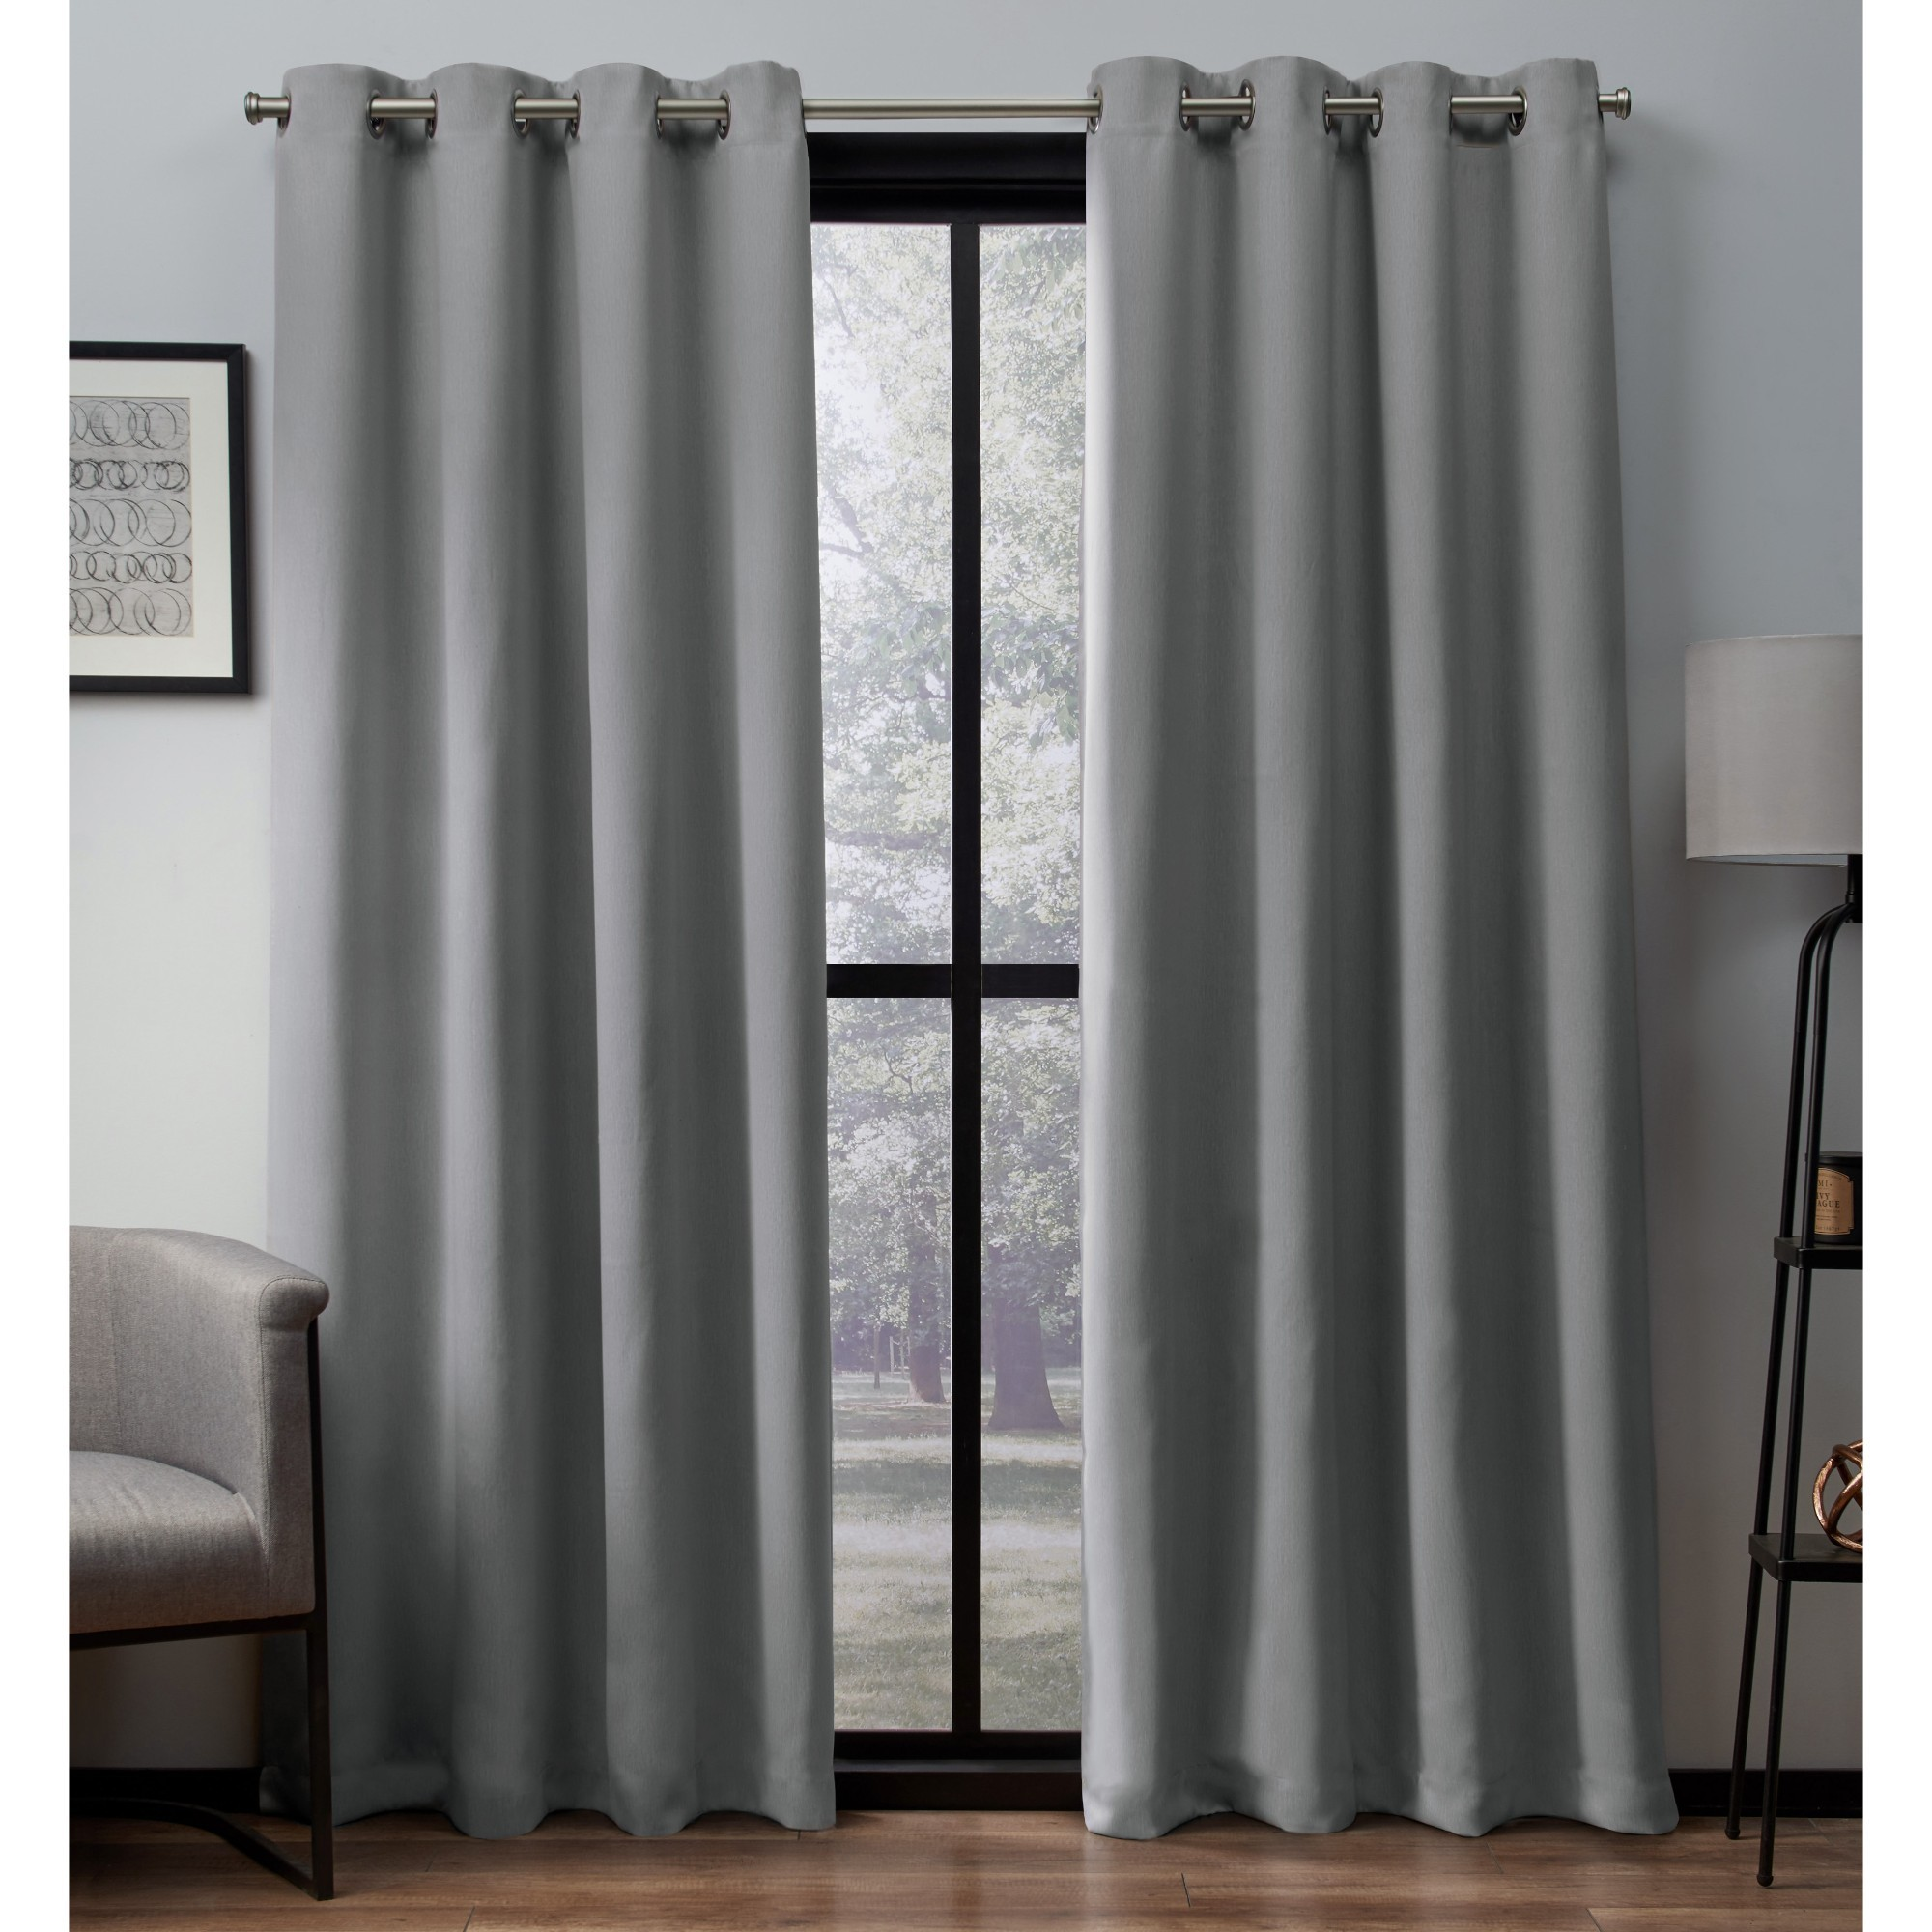 Exclusive Home Heath Textured Linen Window Curtain Panel Pair with Grommet Top